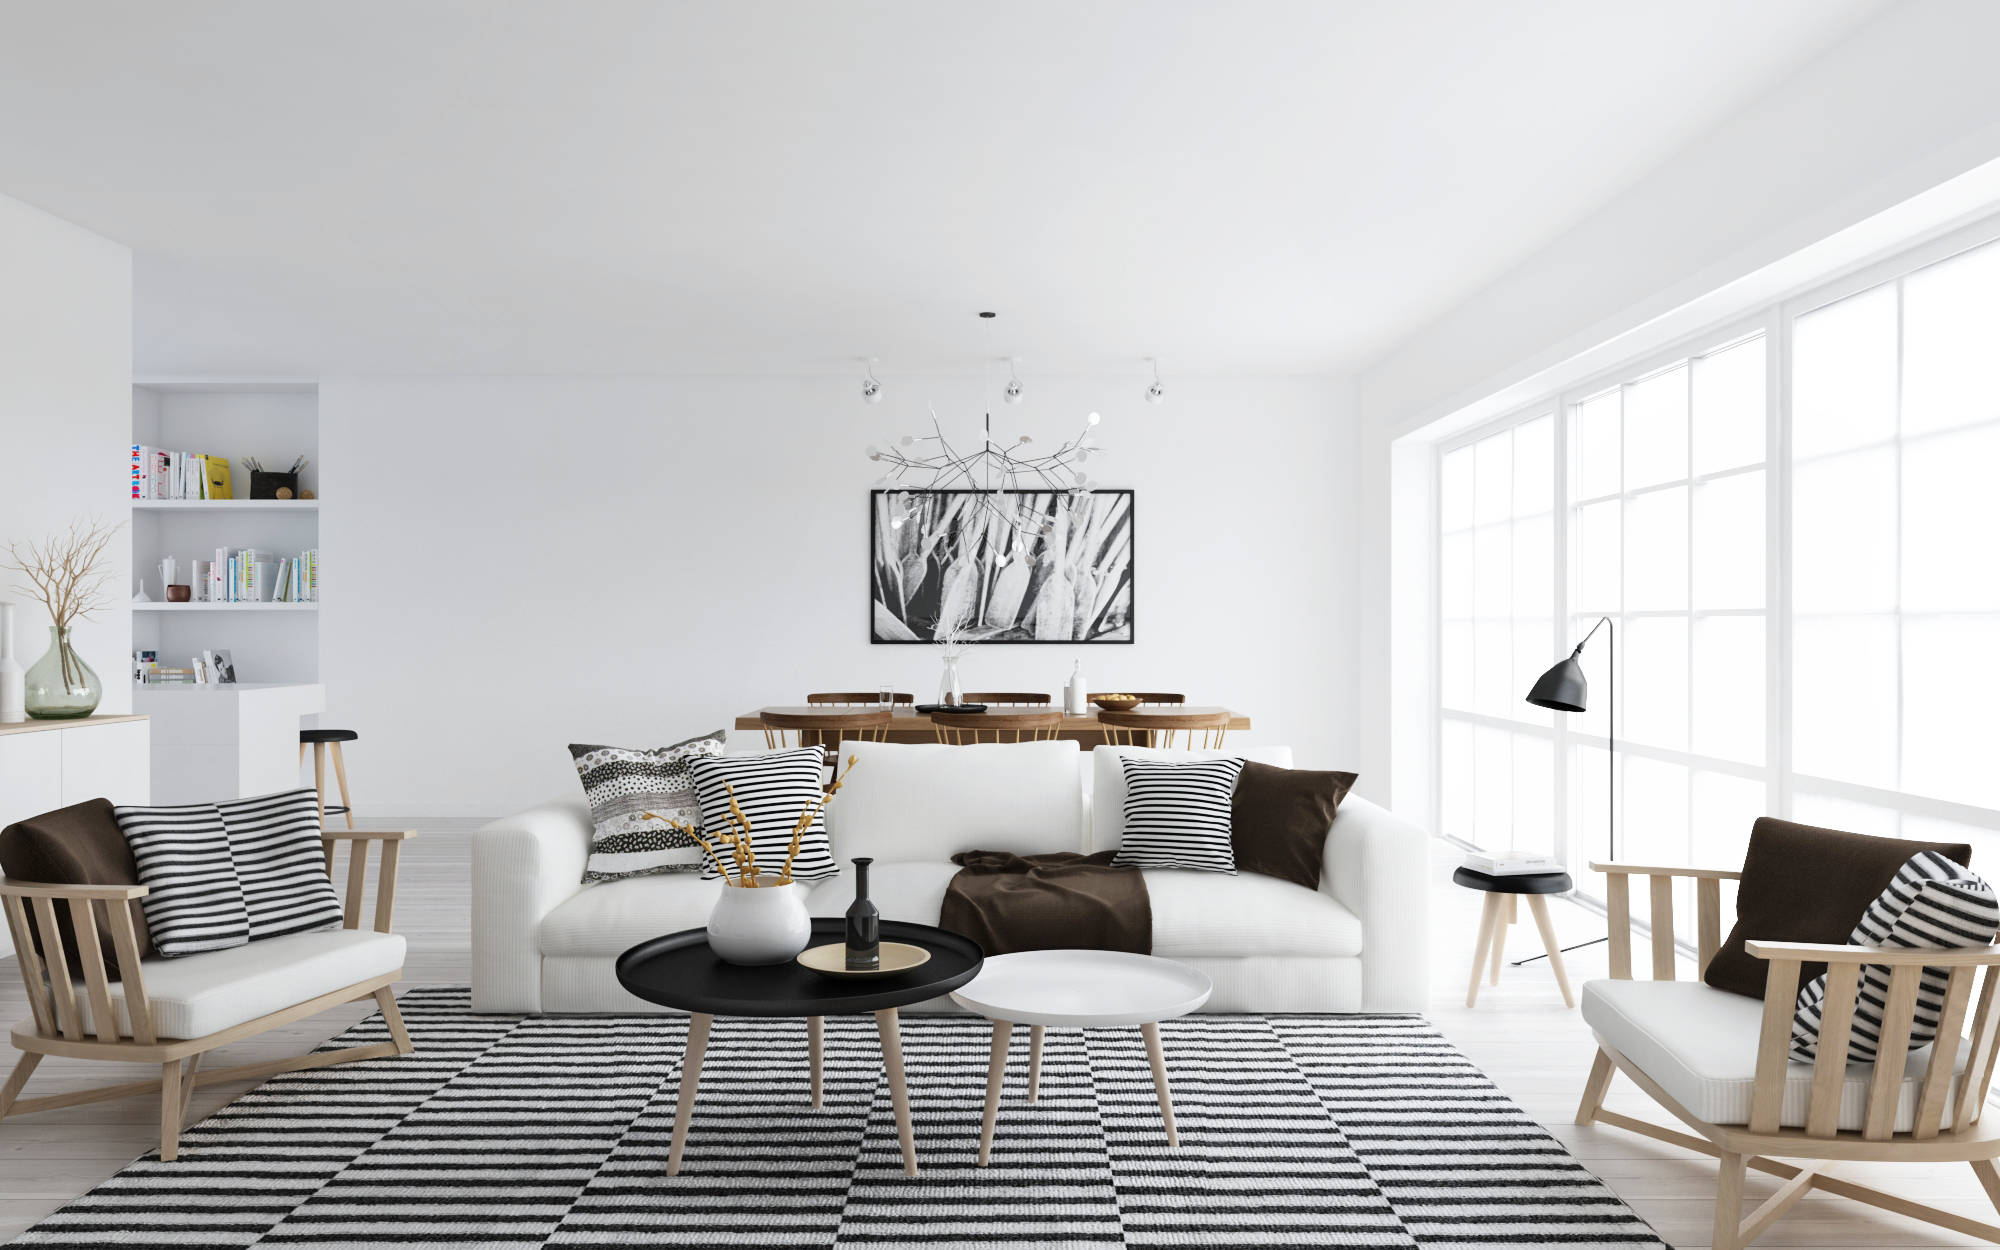 ATDesign-nordic-style-living-in-monochrome